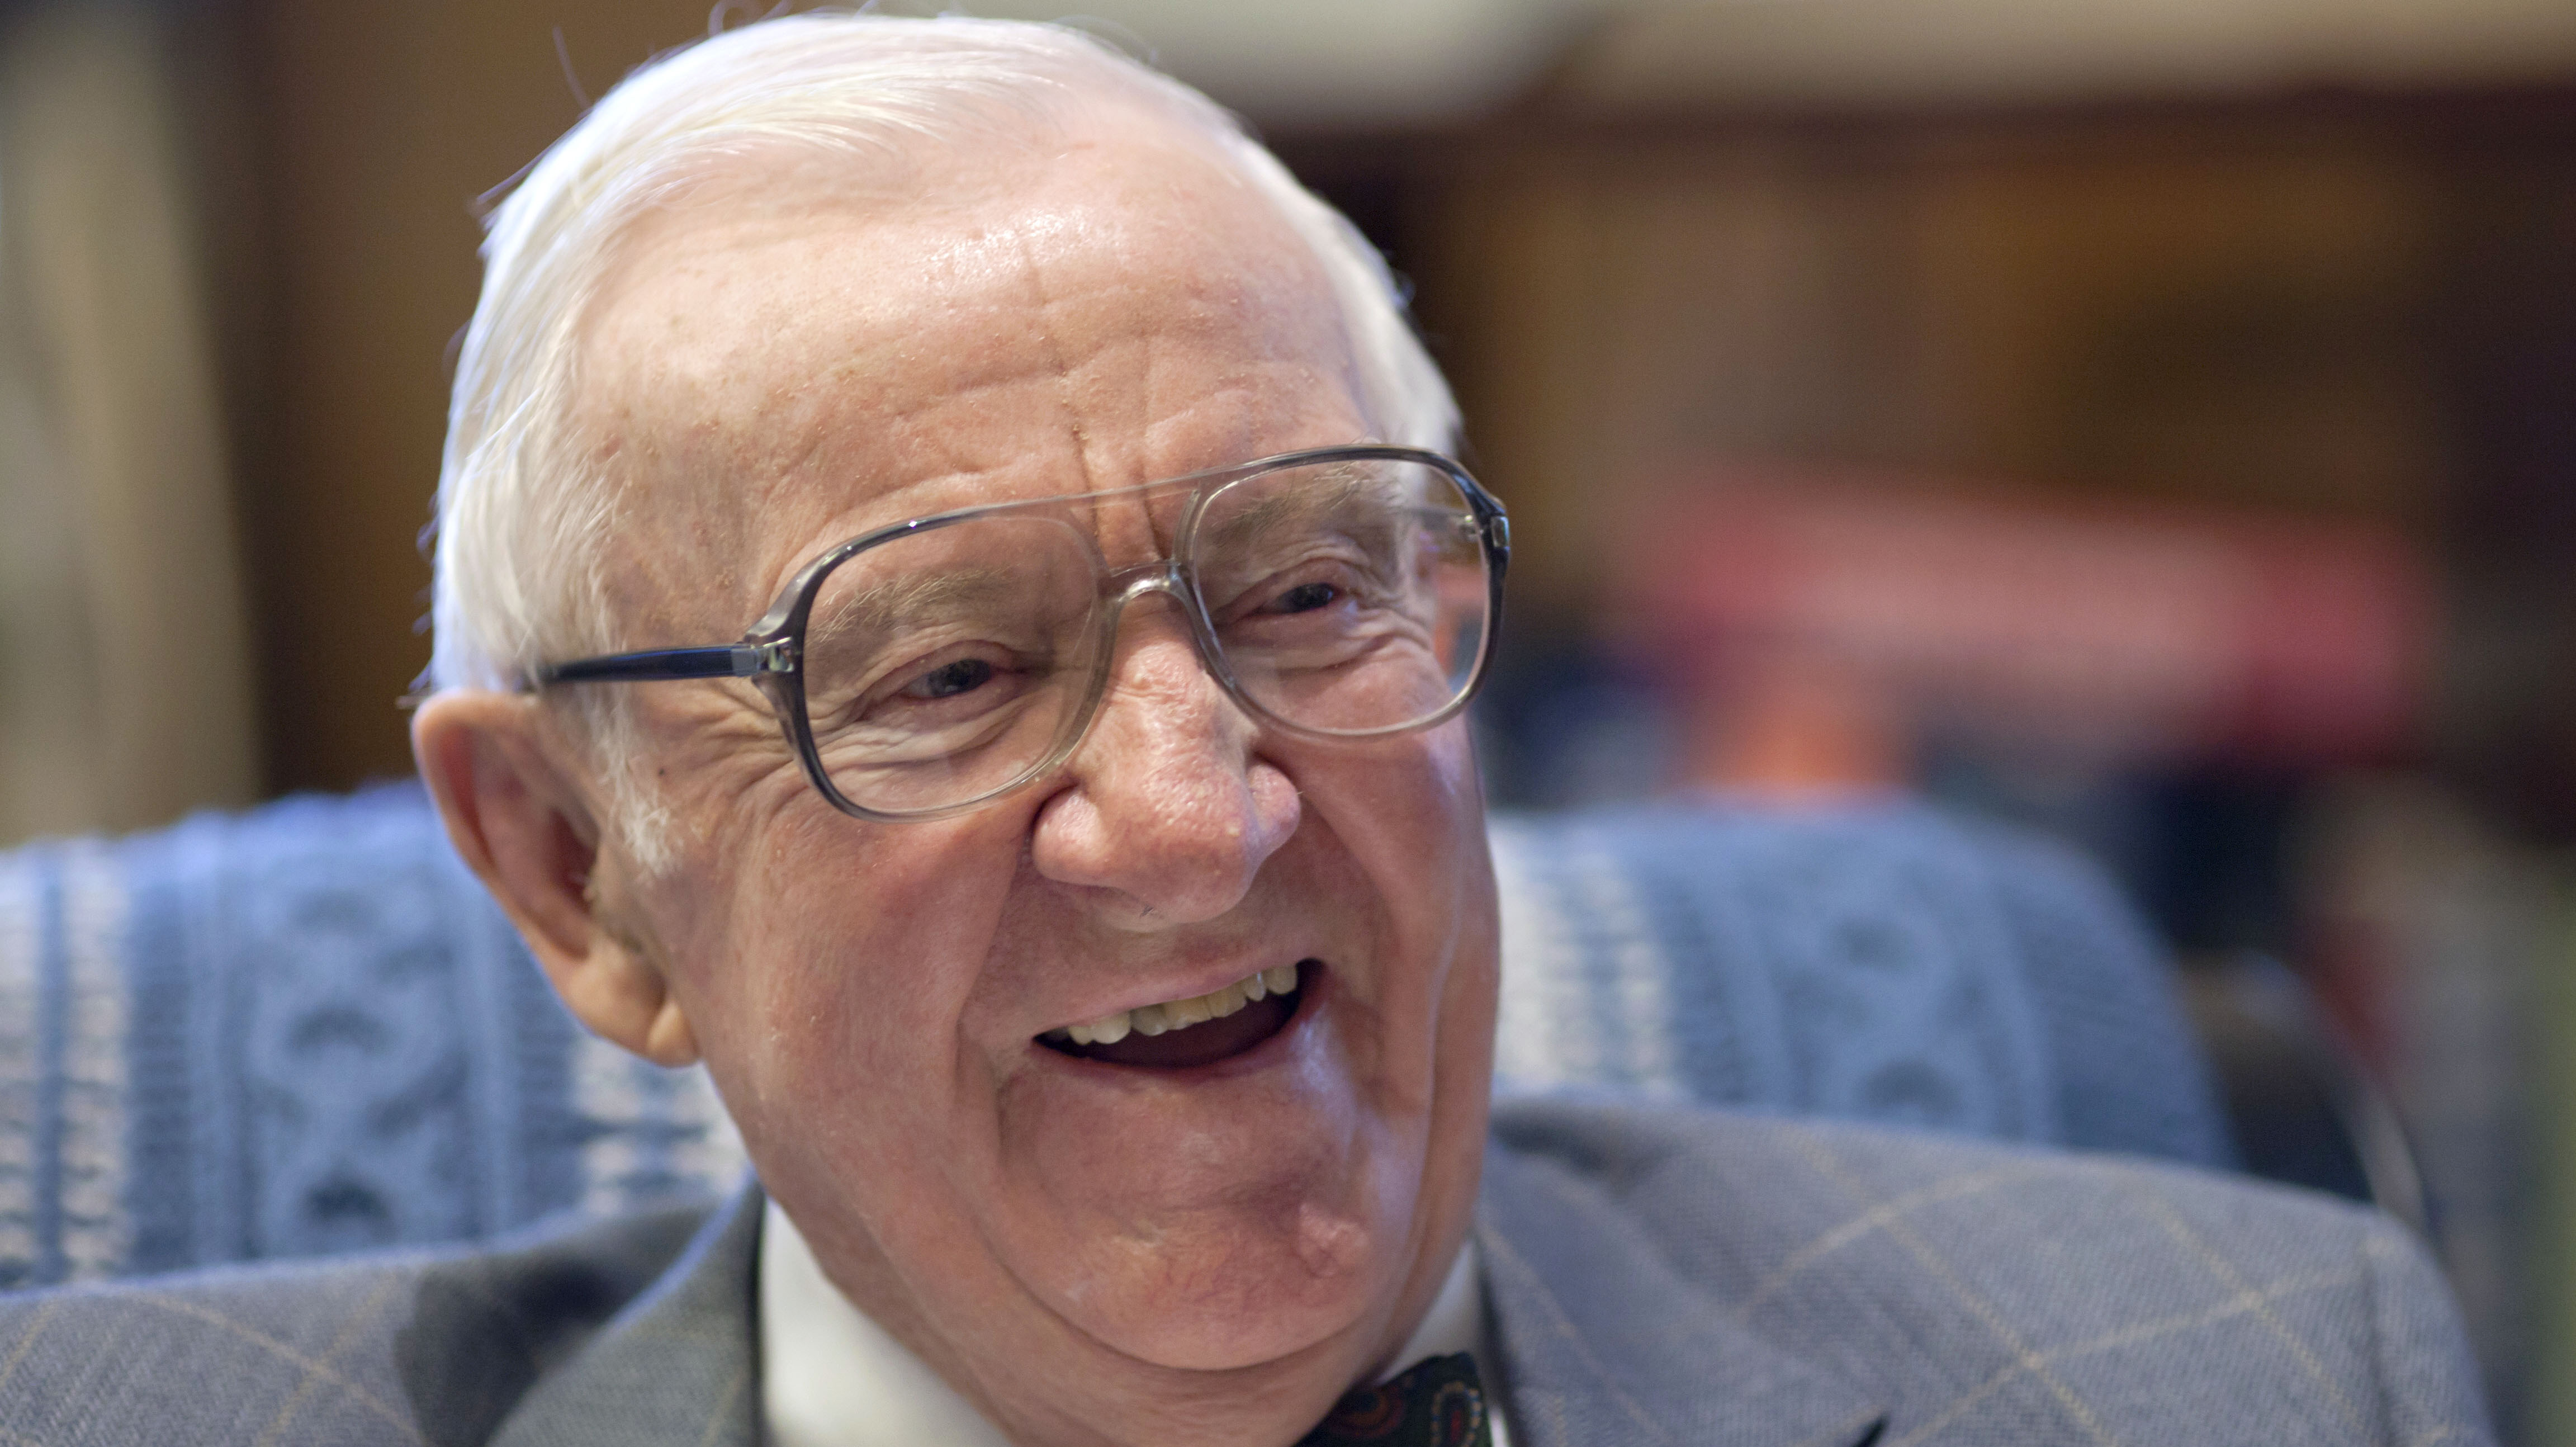 Justice John Paul Stevens, A Maverick On The Bench, Dies At 99